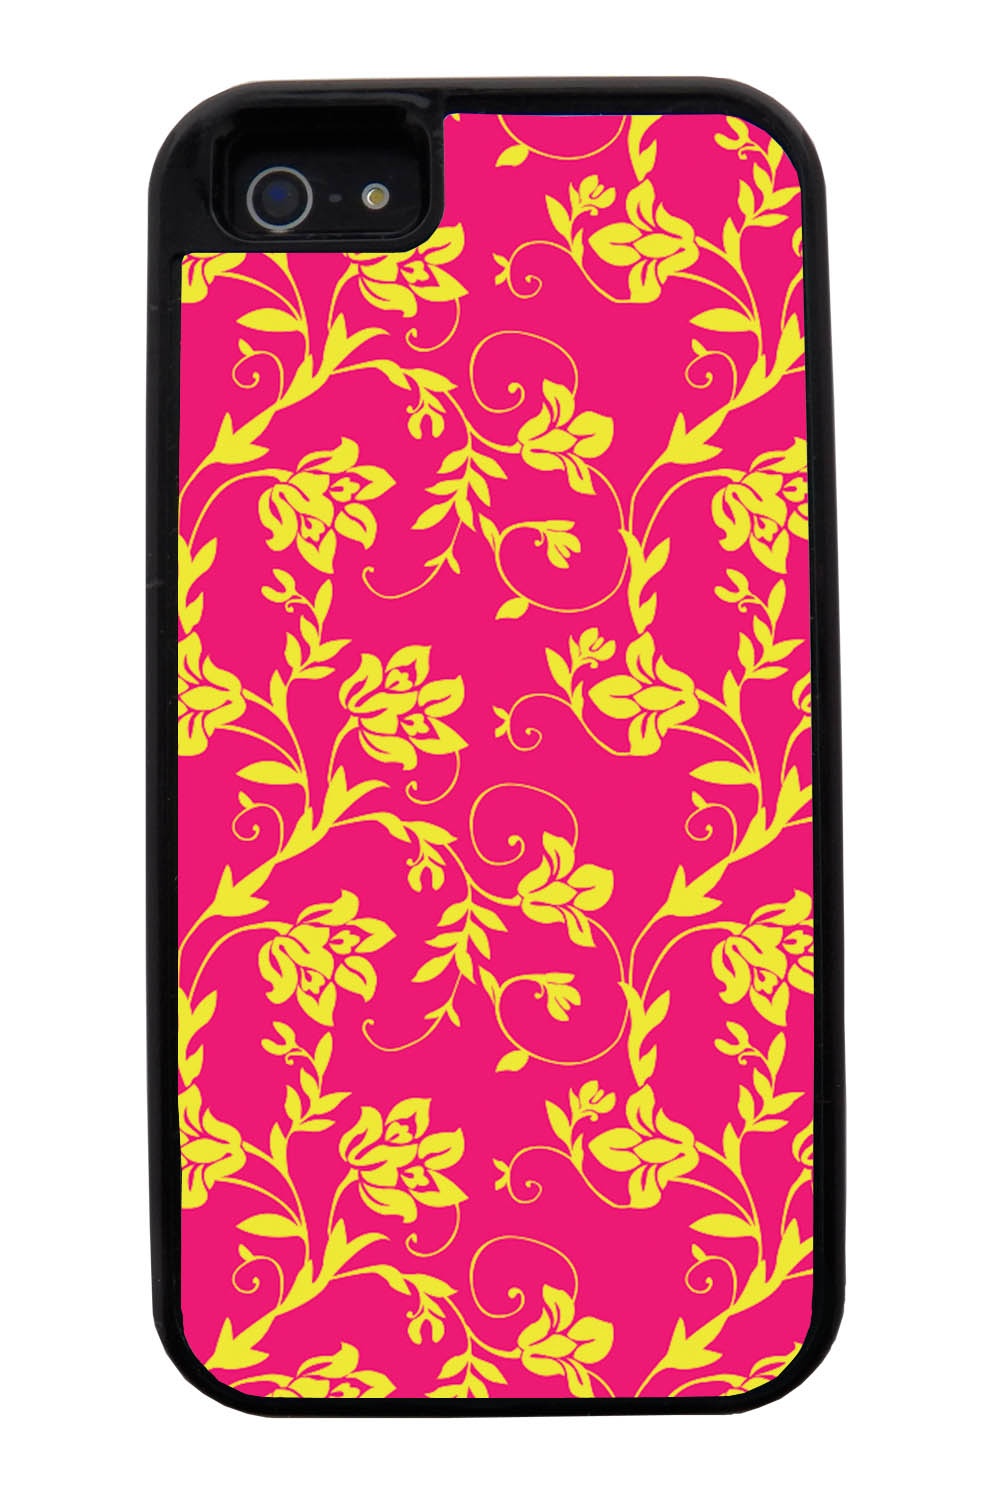 Apple iPhone 5 / 5S Flower Case - Yellow on Hot Pink - Stencil Cutout - Black Tough Hybrid Case